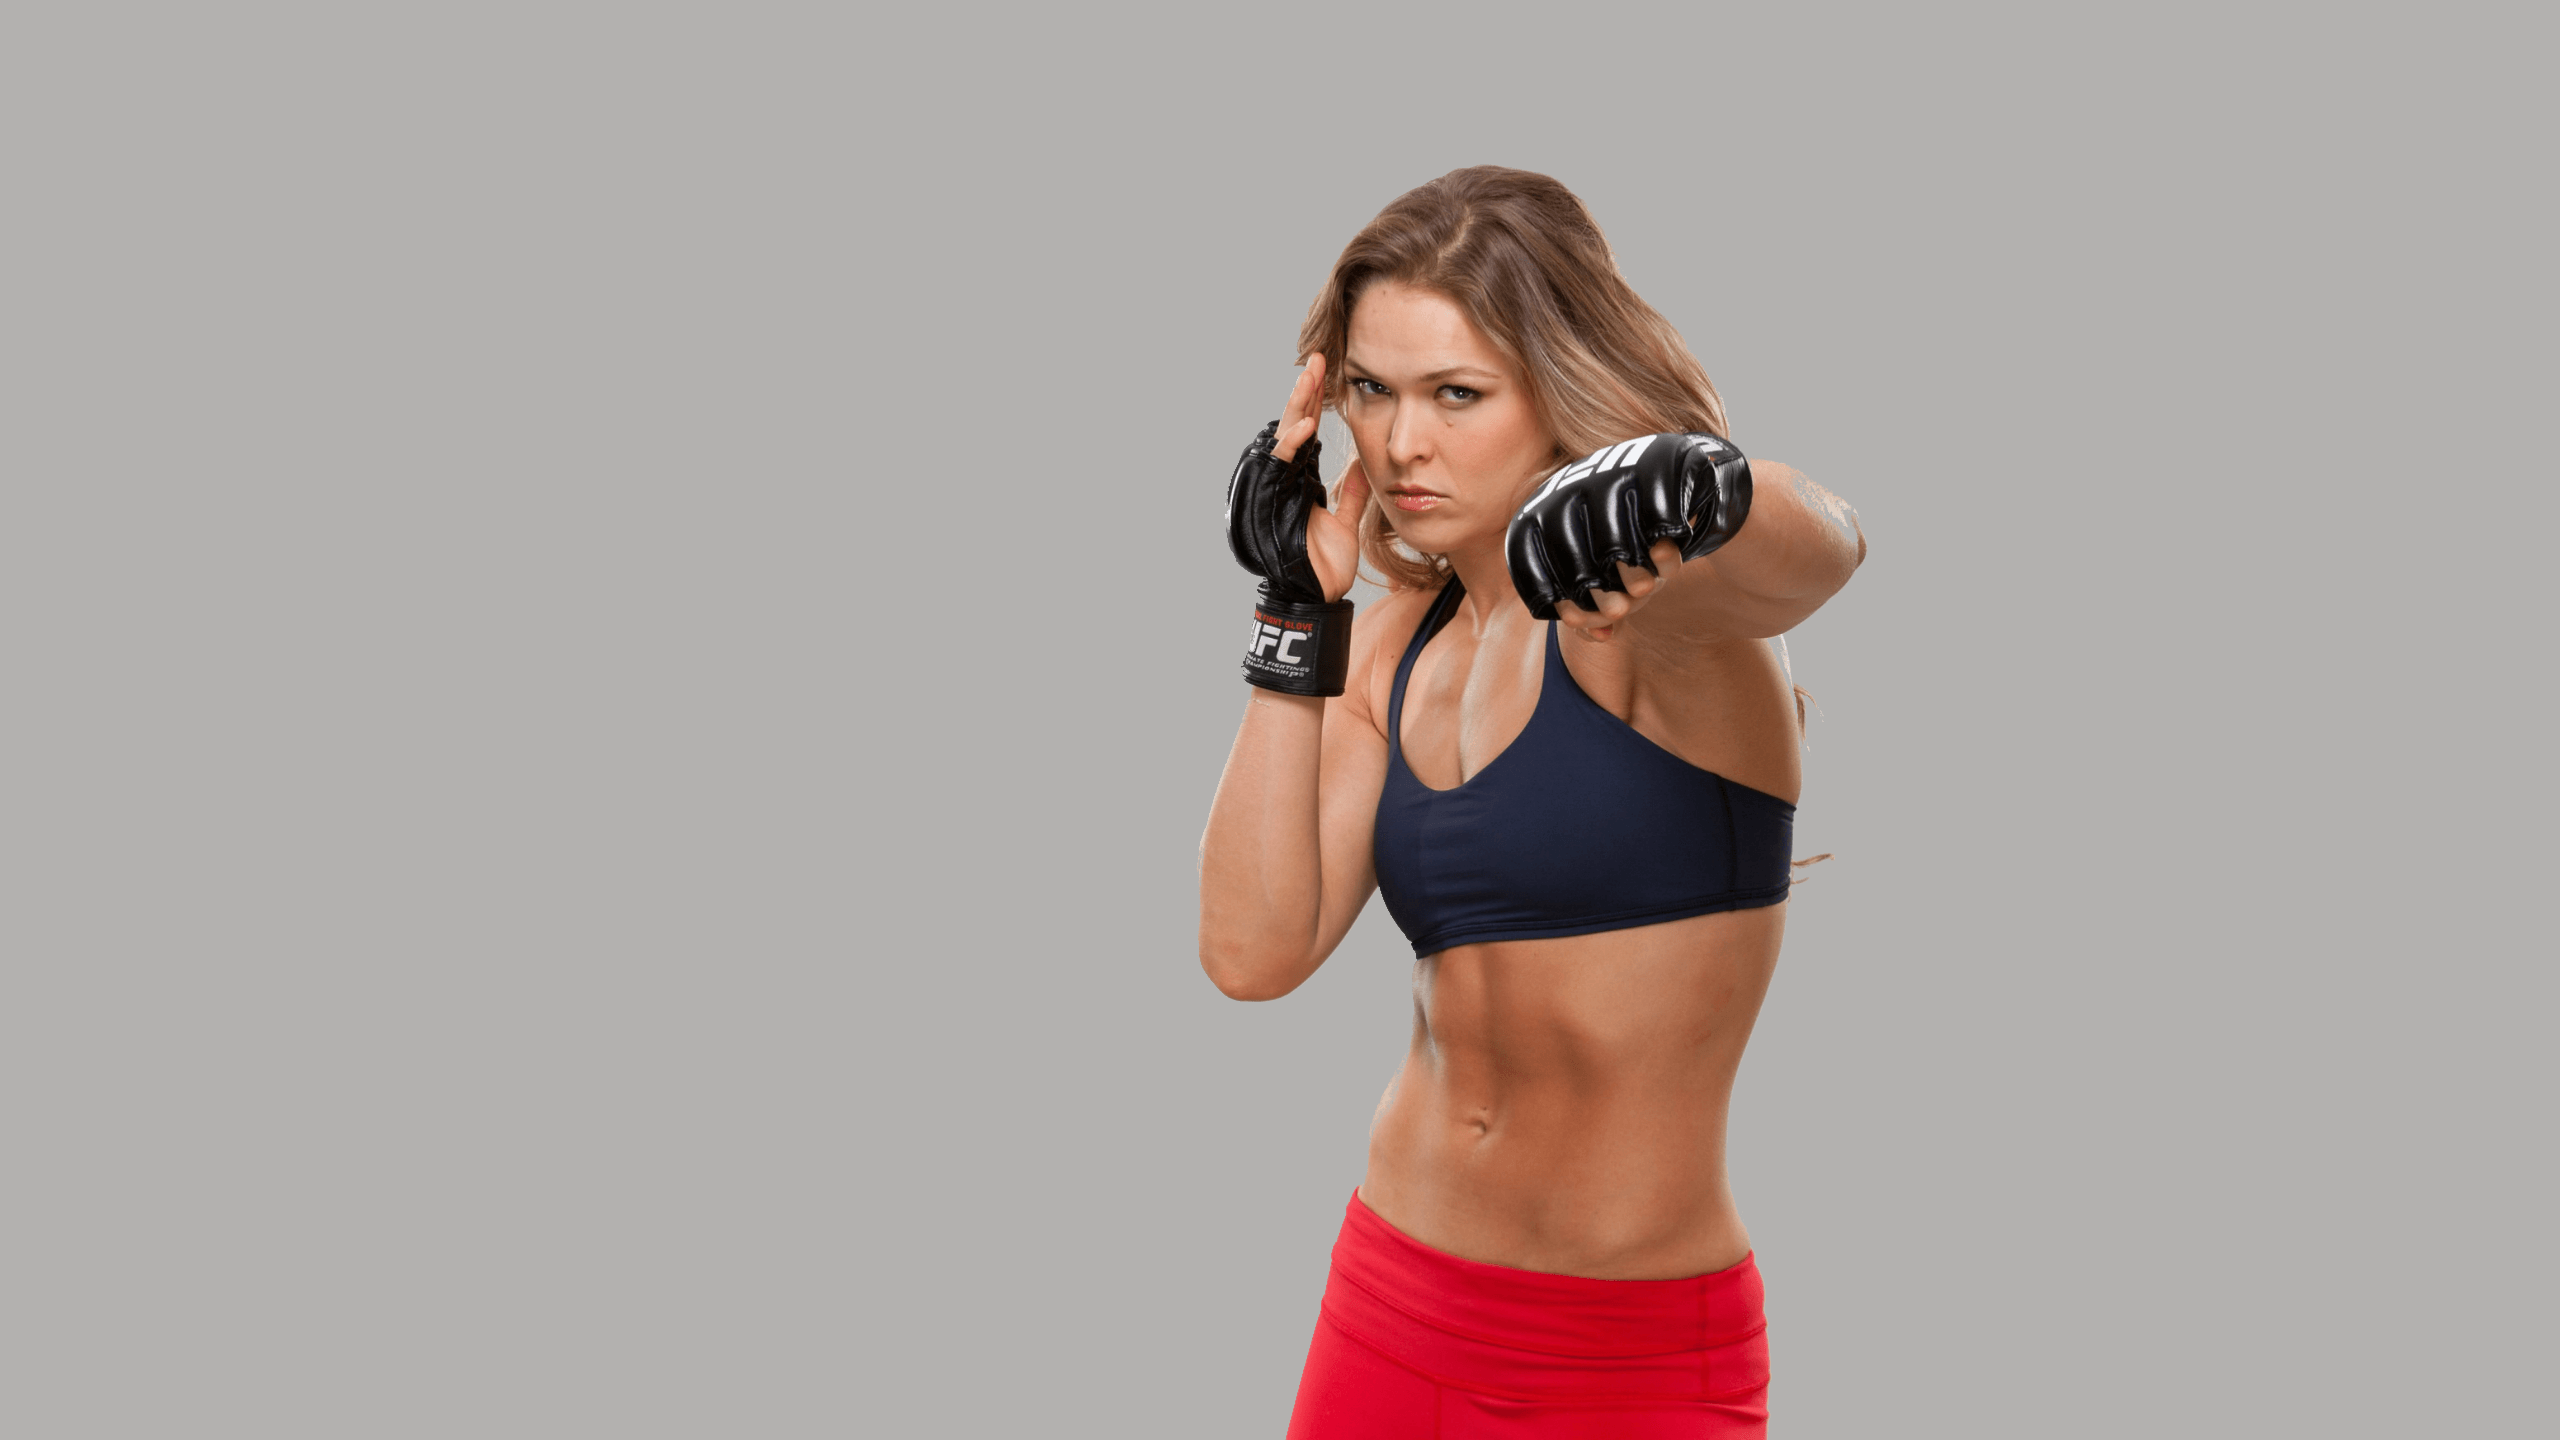 35 Ronda Rousey HD Wallpapers